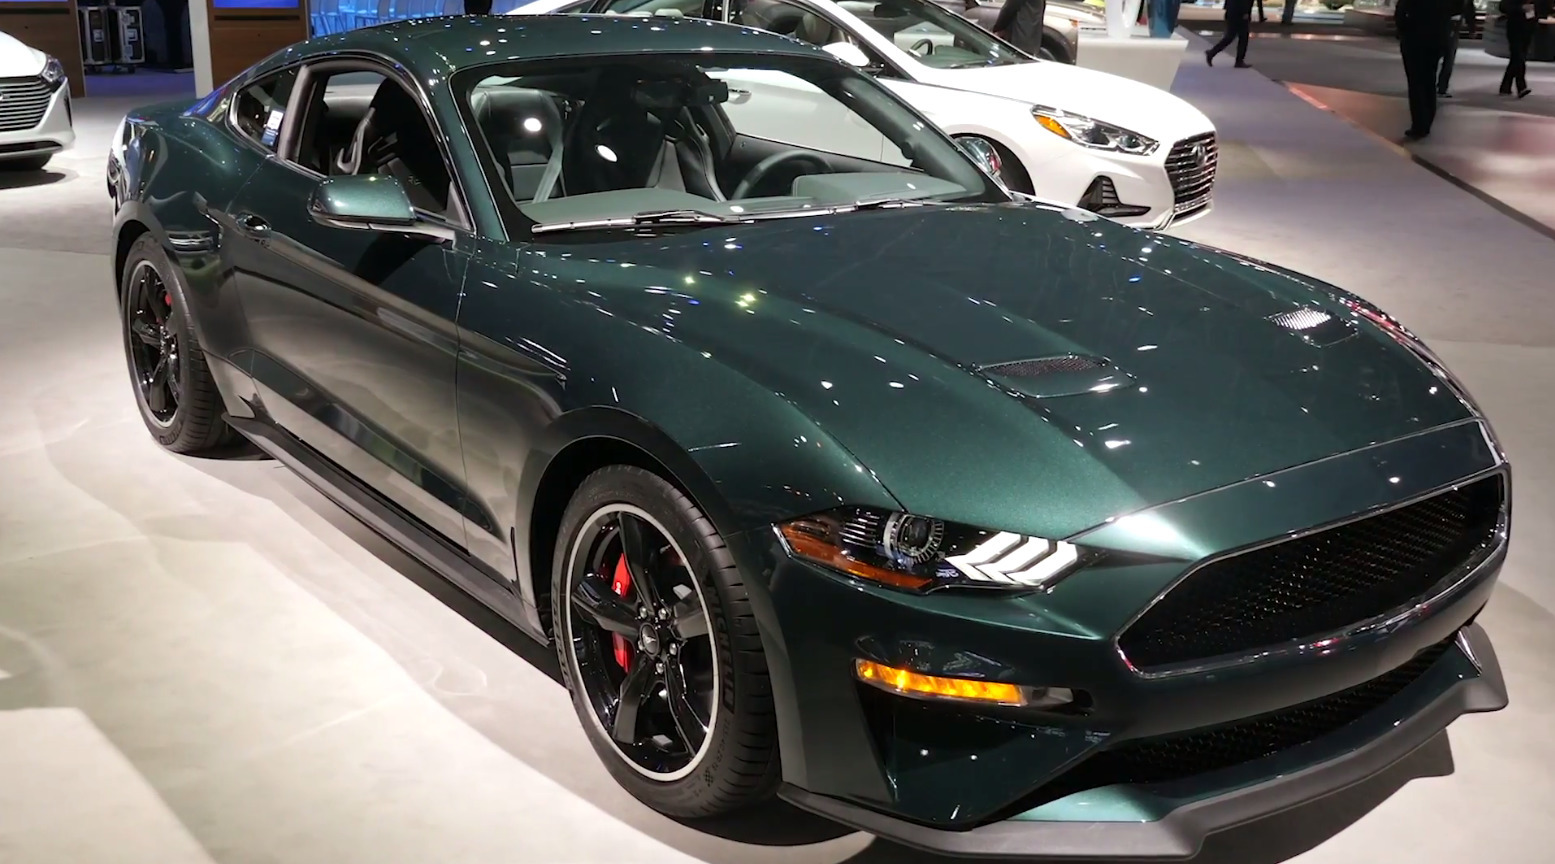 2019 Ford Mustang Bullitt Edition at the New York Auto Show